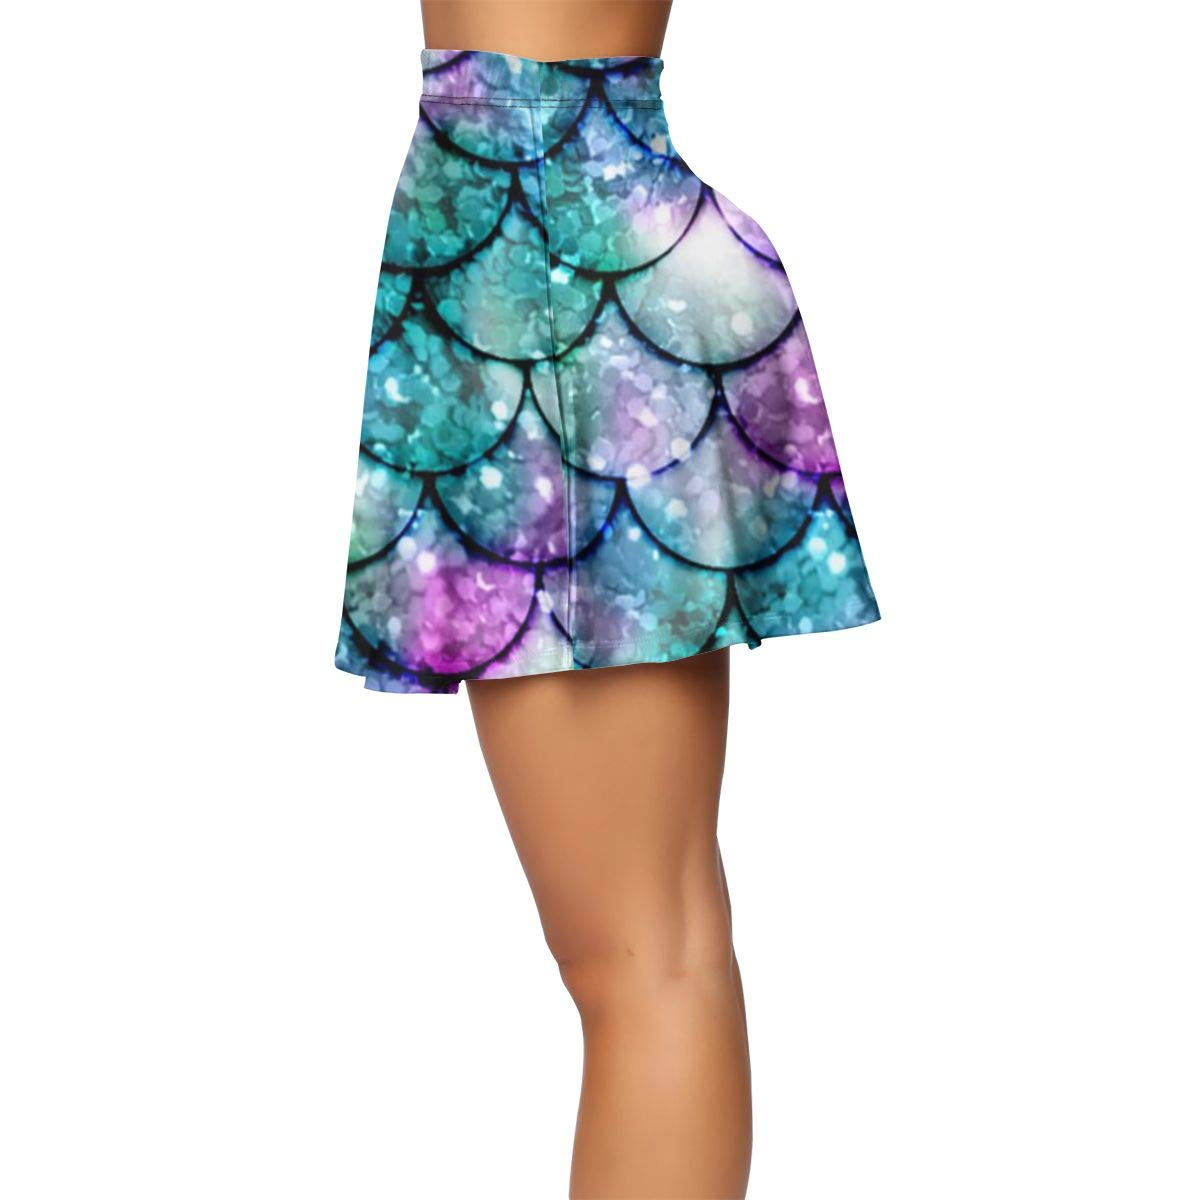 Versatile Stretchy Flared Shirring Skirt Shiny Short Mini Skirt Bodycon Party Skirt Outfits YongColer Milk Cow Spots Print Casual Circle Skater Skirt for Women Girls Lady